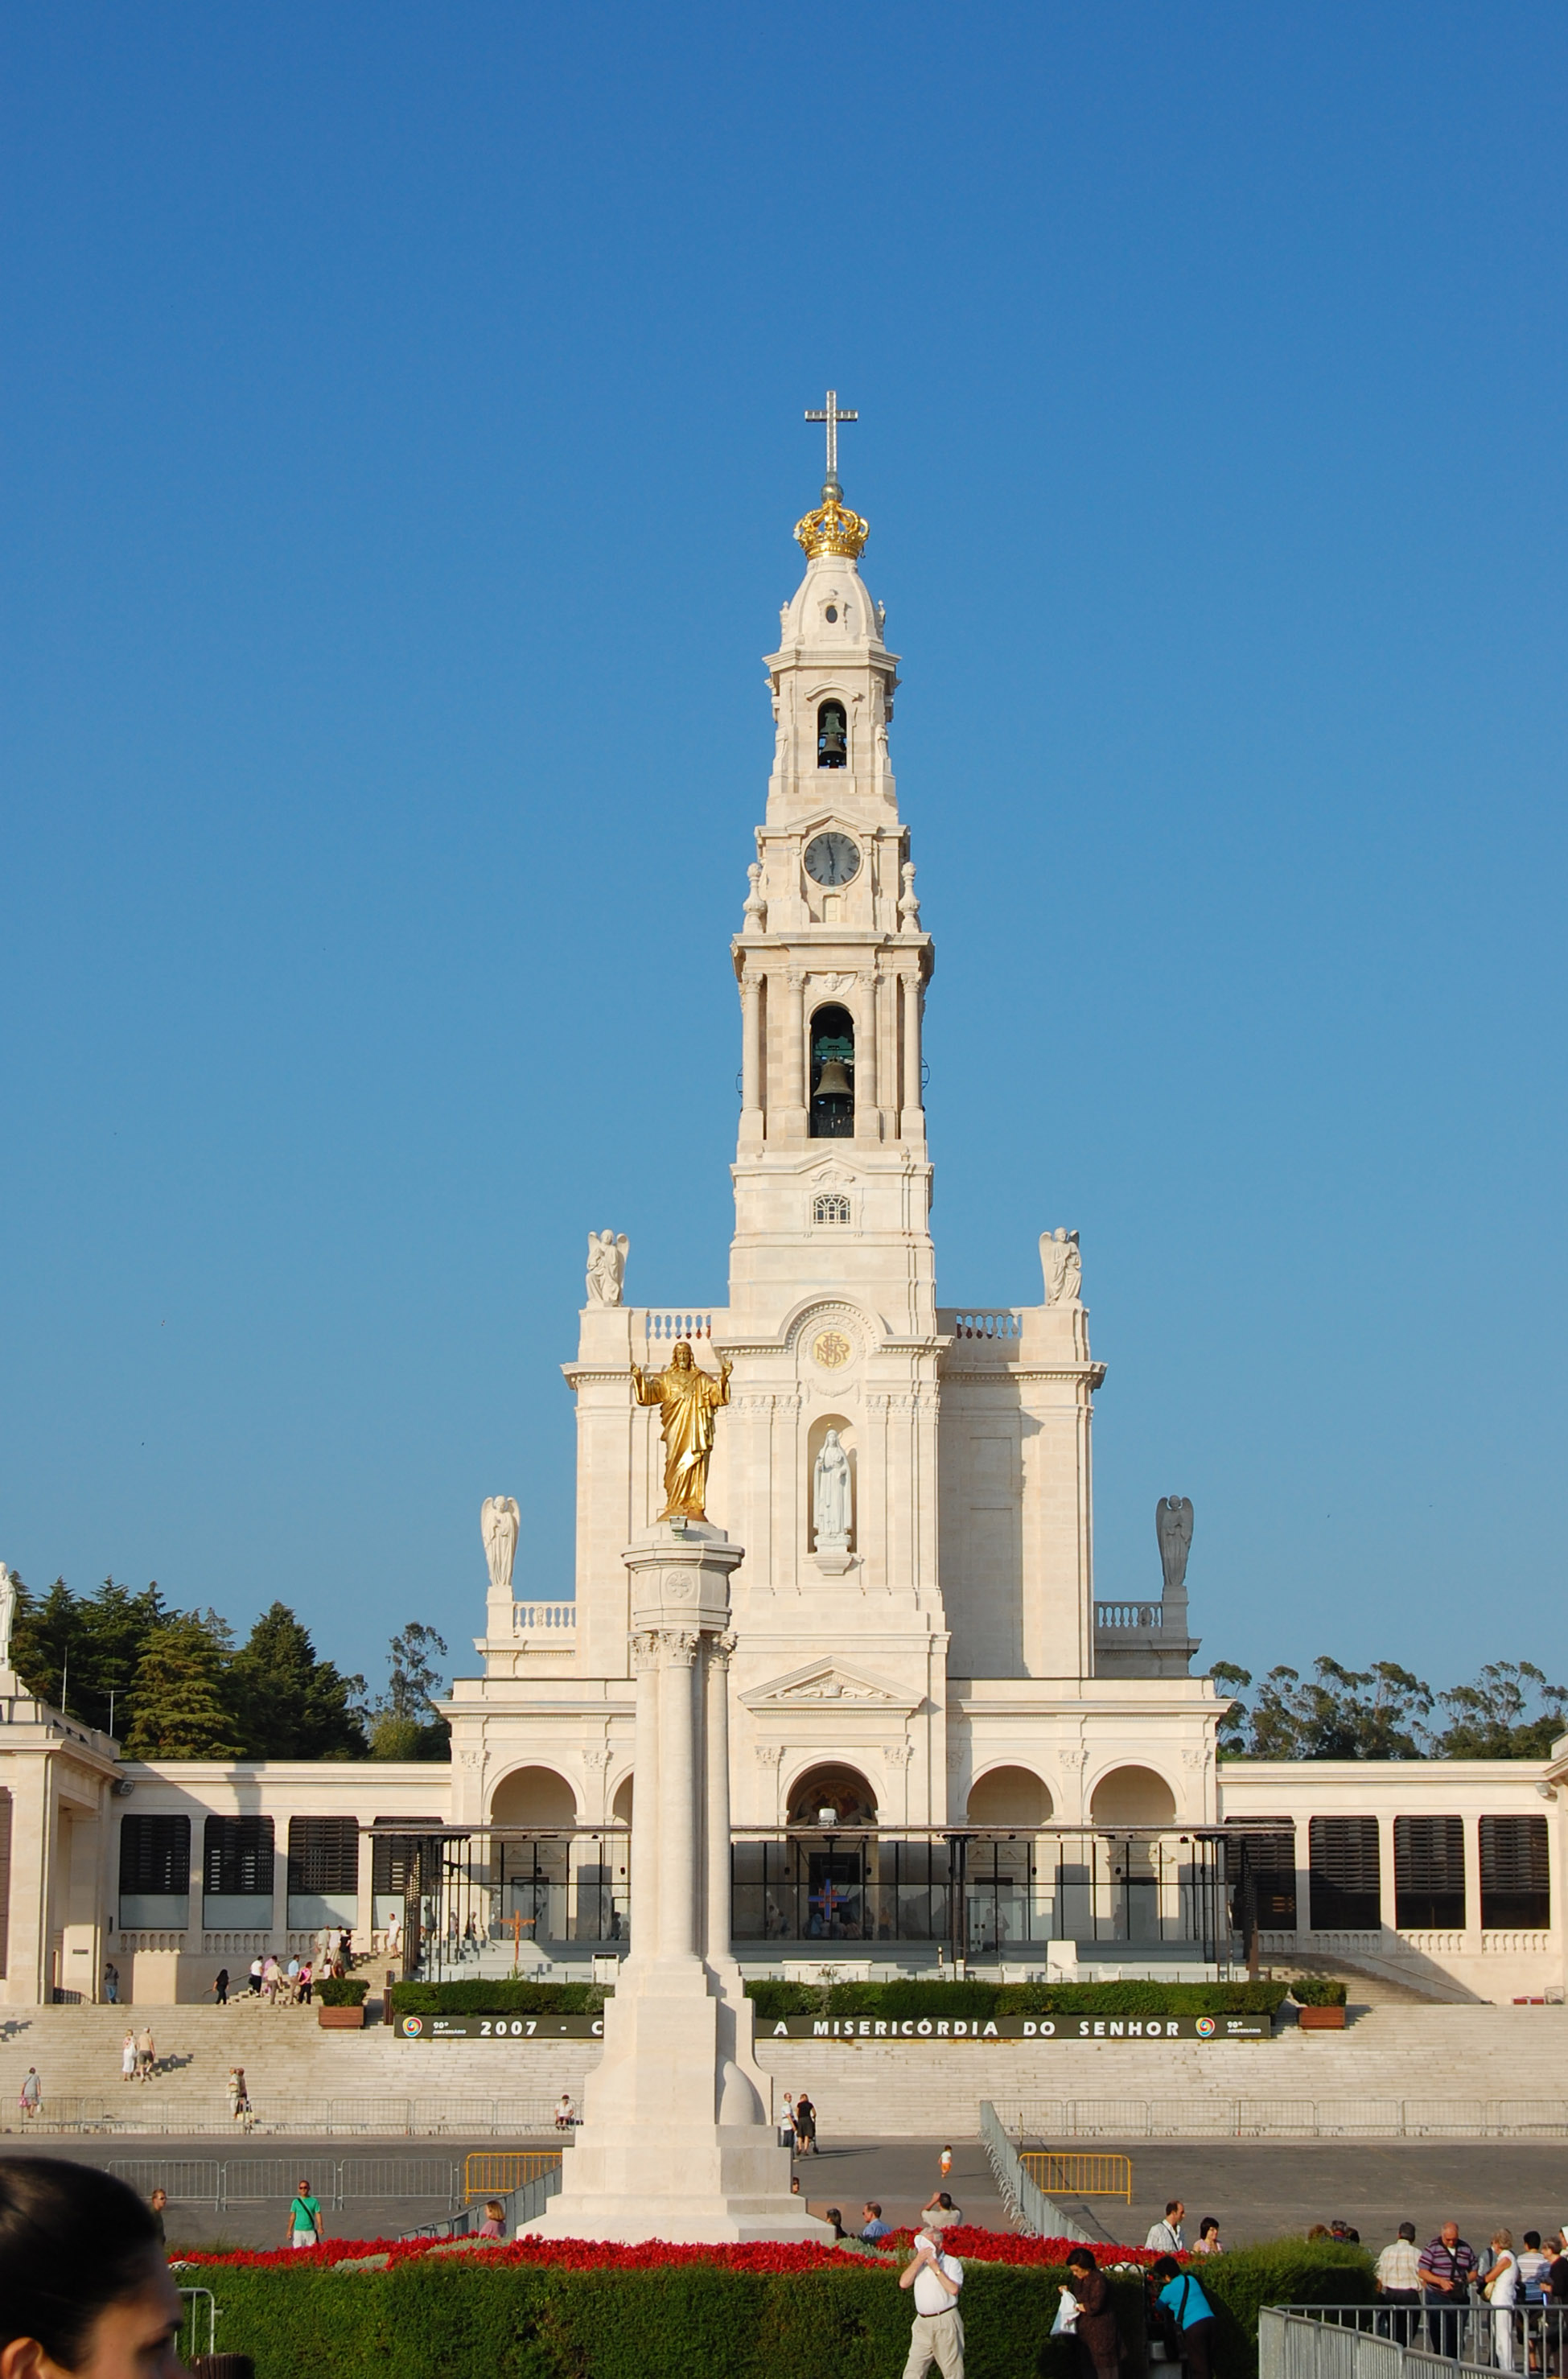 the history behind the famous image of our lady of fatima at fatima portugal The shrine of our lady of fatima (portuguese: nossa senhora do rosário da  fátima) is  history of the shrine of our lady of fatima  the scheduled arrival of  the virgin mary, which led to the famous sun miracle of fatima  his  photographer did not see it, but shot pictures of the mesmerized crowd looking  into the sky.